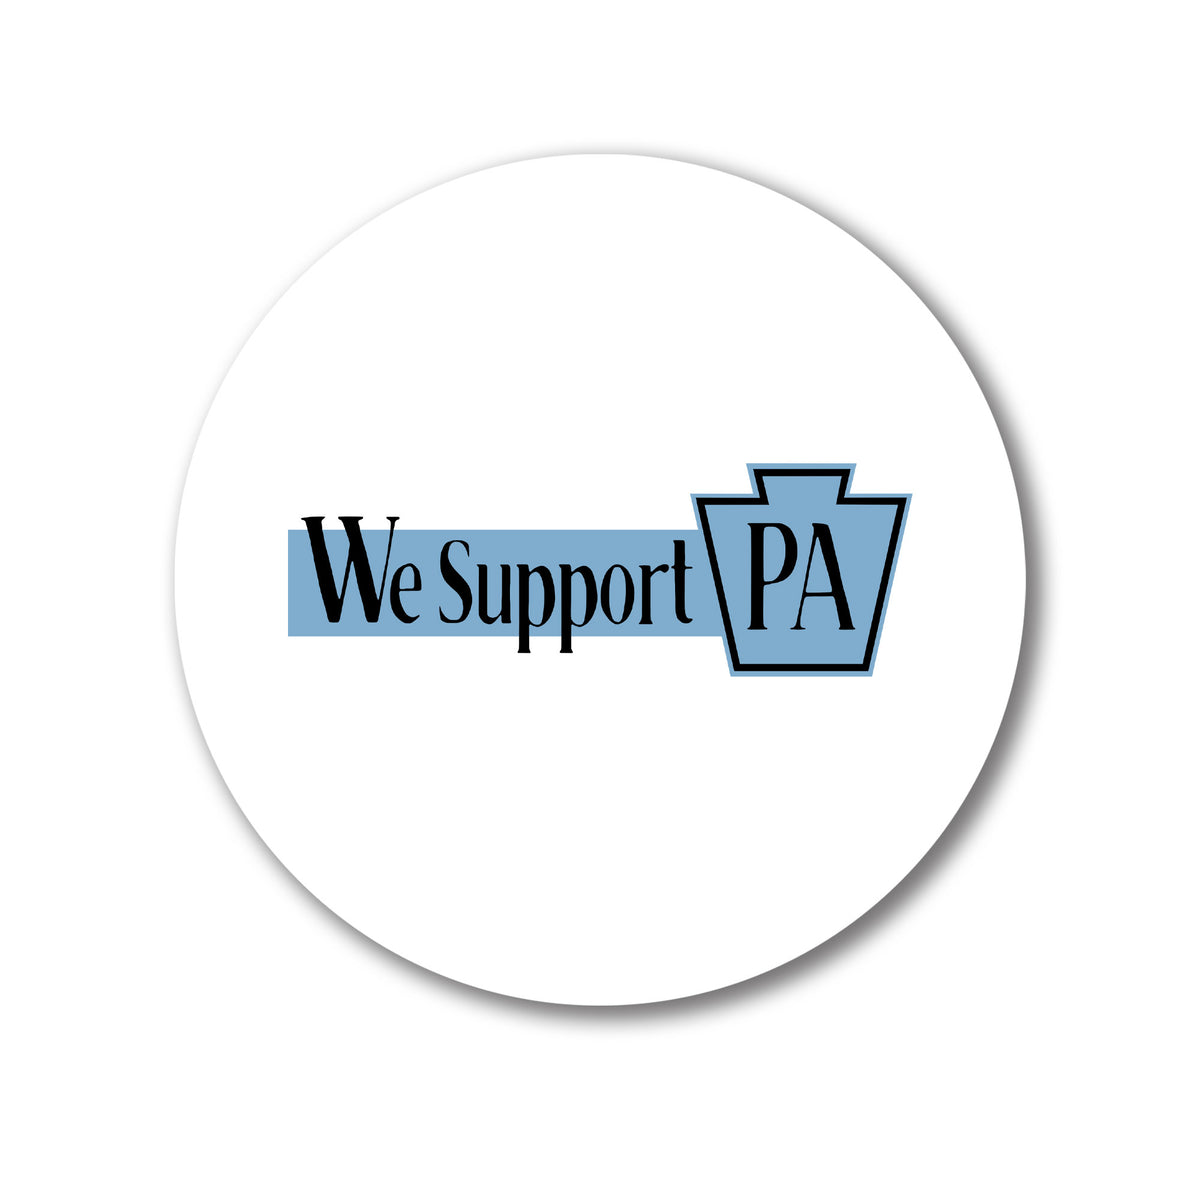 Get Stylish We Support PA Coasters